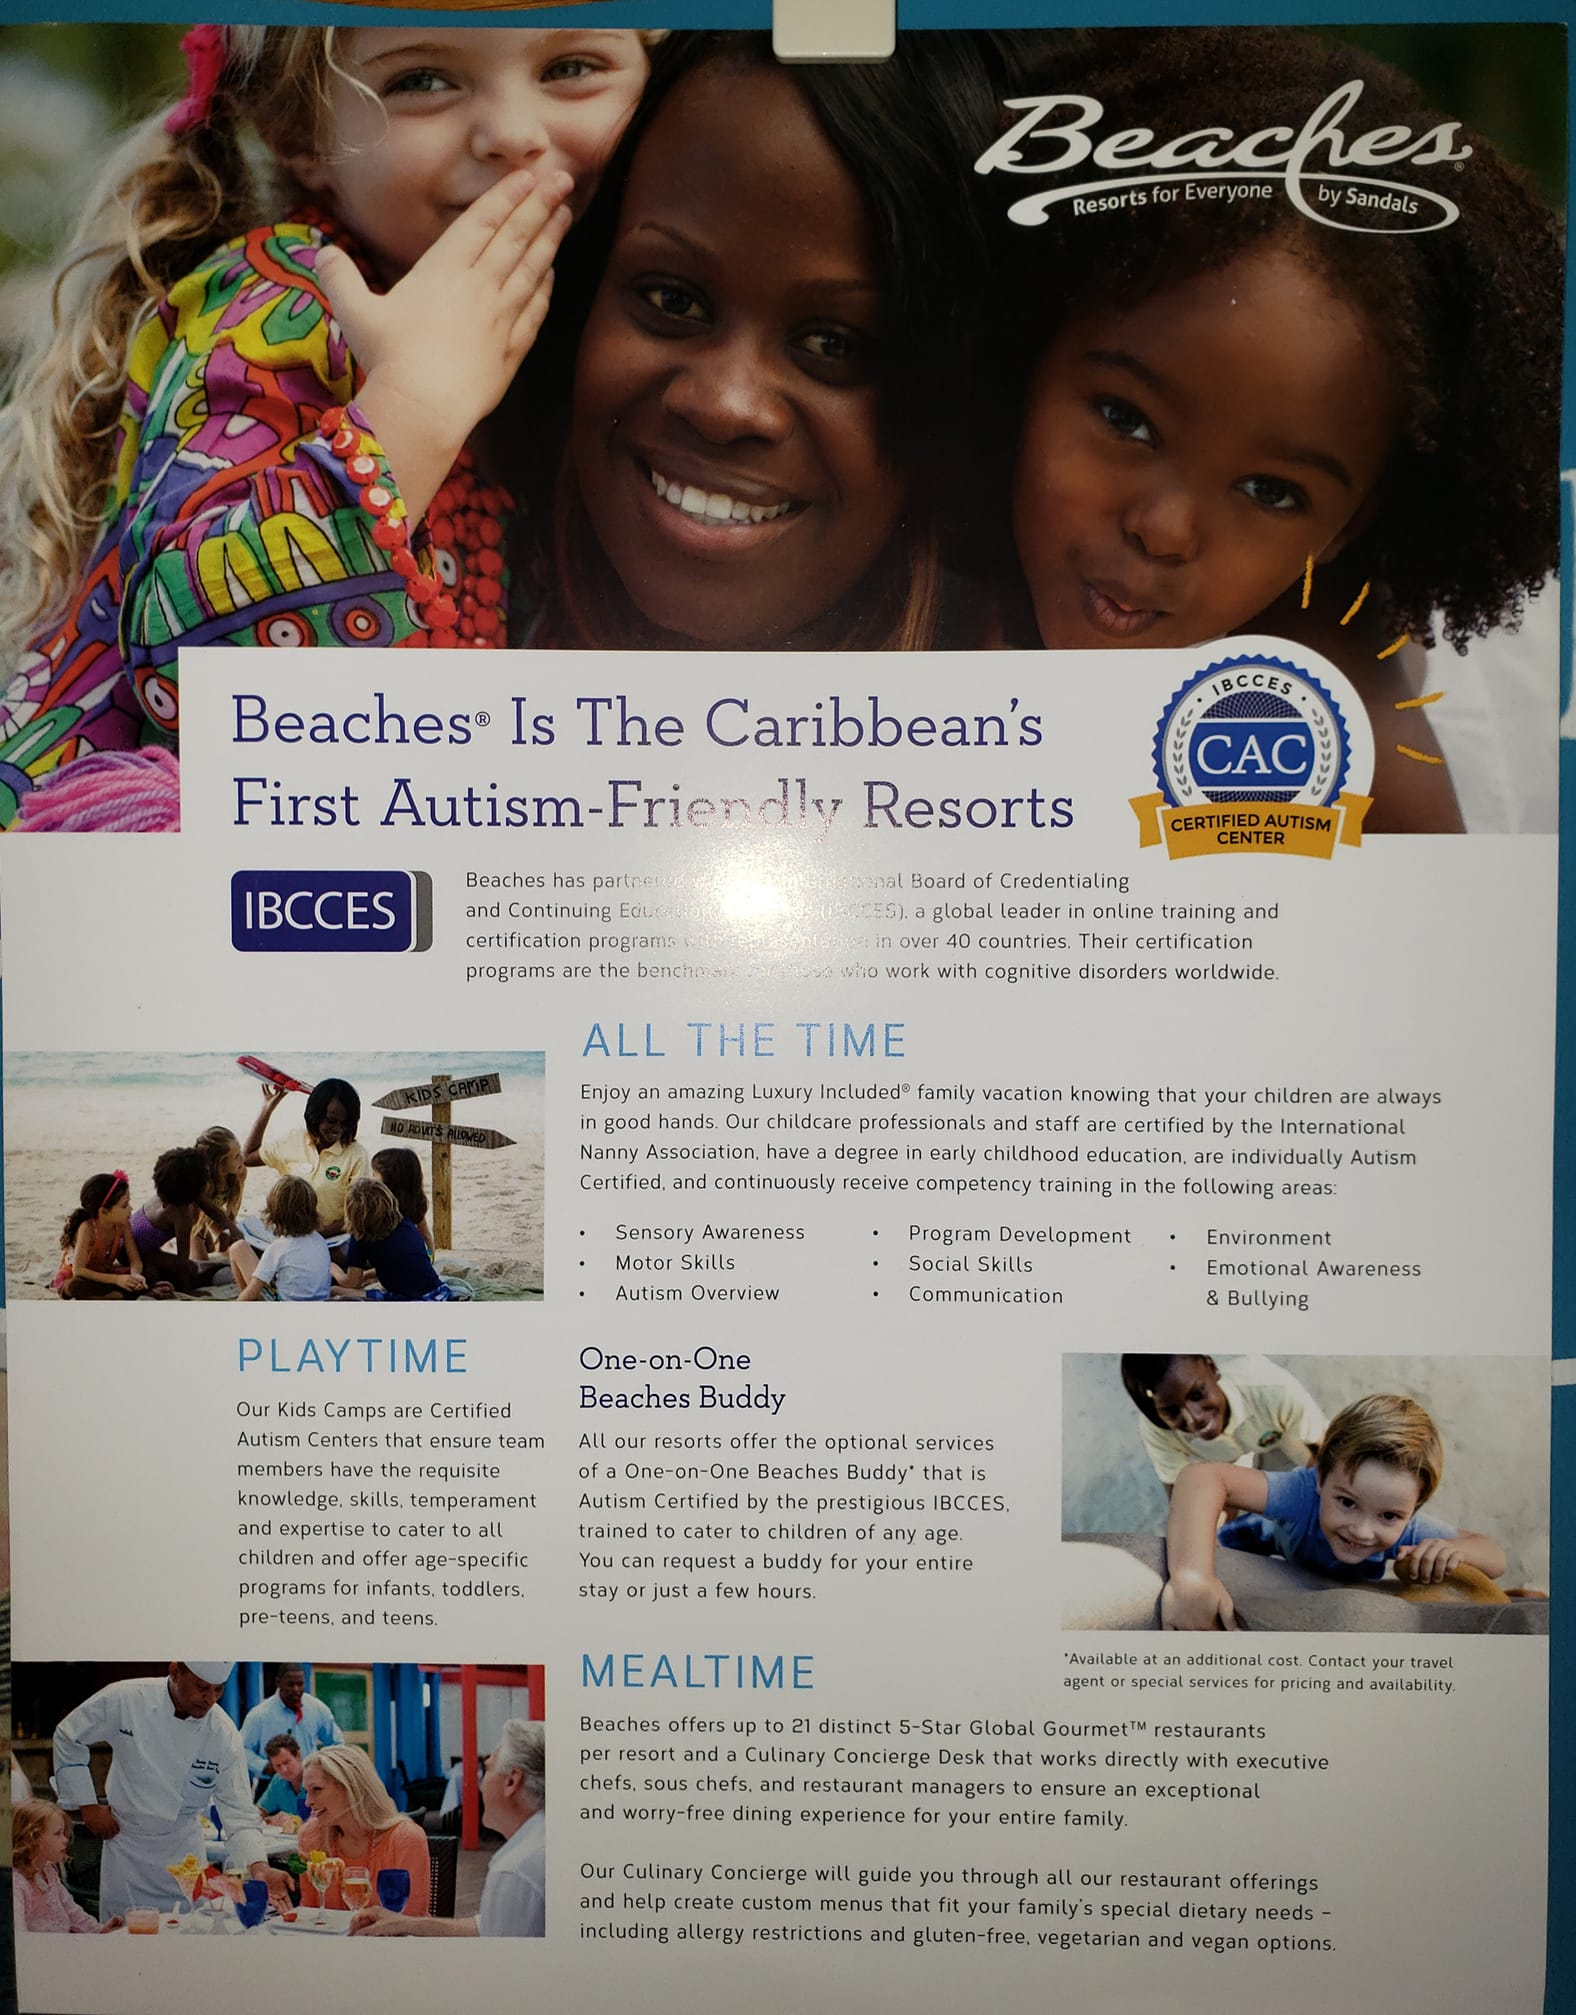 Beaches Resorts The Caribbeans first Autism Friendly Resort. Let me tell you a... Pick and Pack Travel llc